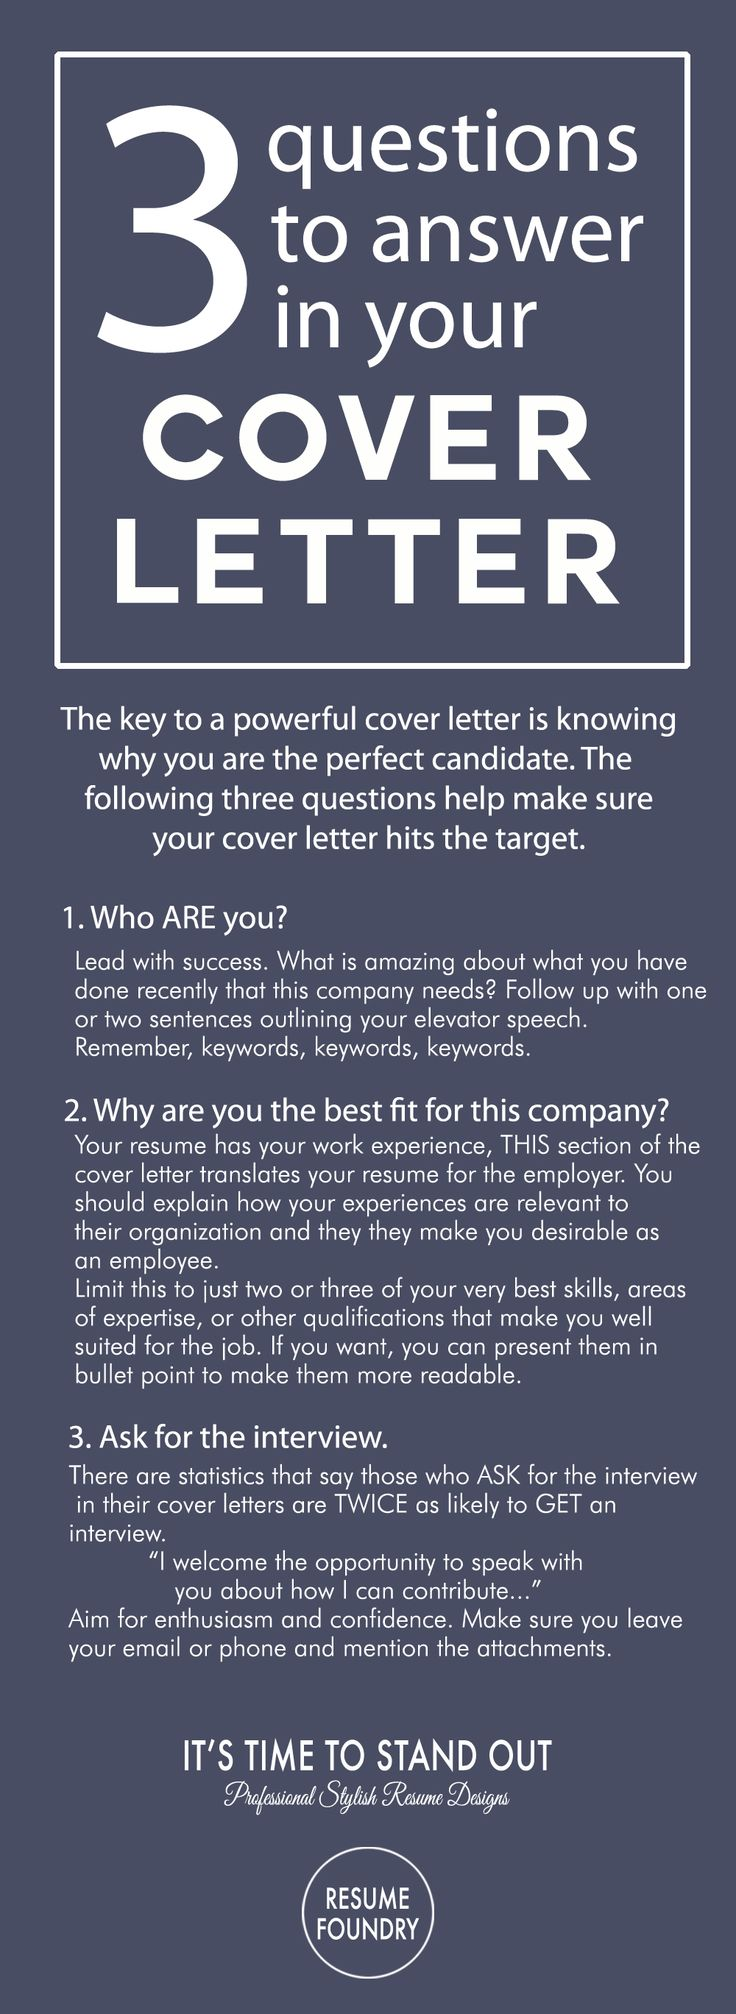 cover letter tips outline how to write a cover letter - Job Cover Letter Tips